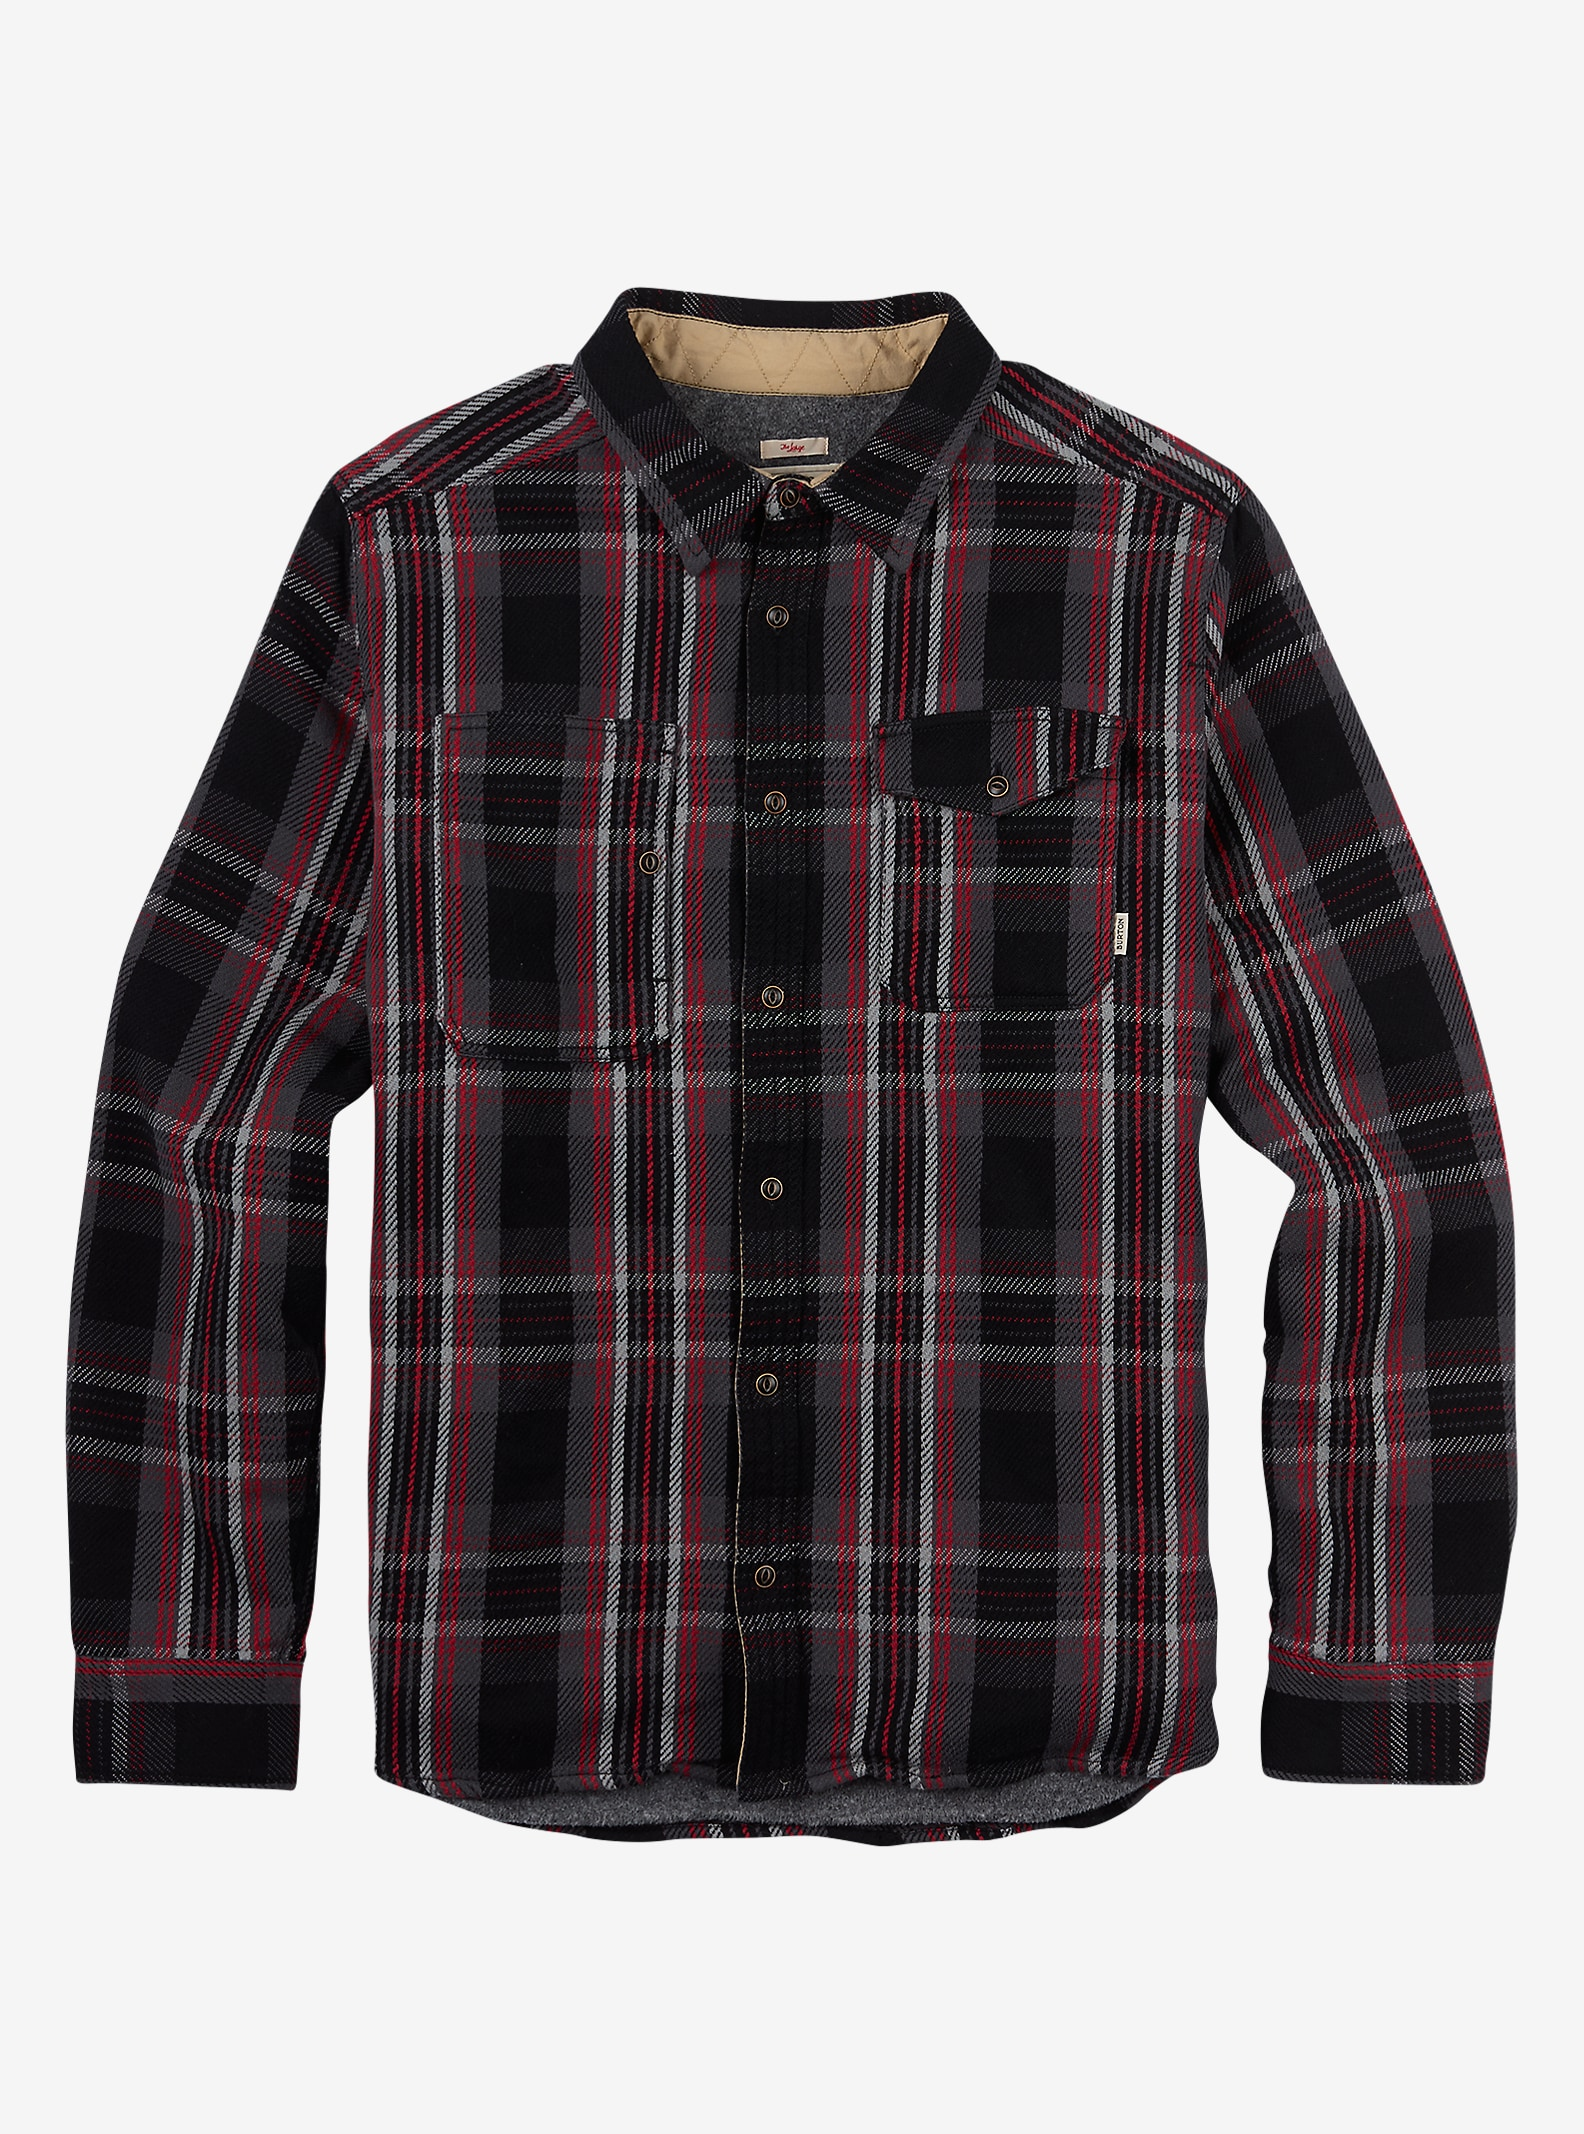 Burton Mill Fleece Lined Woven Shirt shown in True Black North End